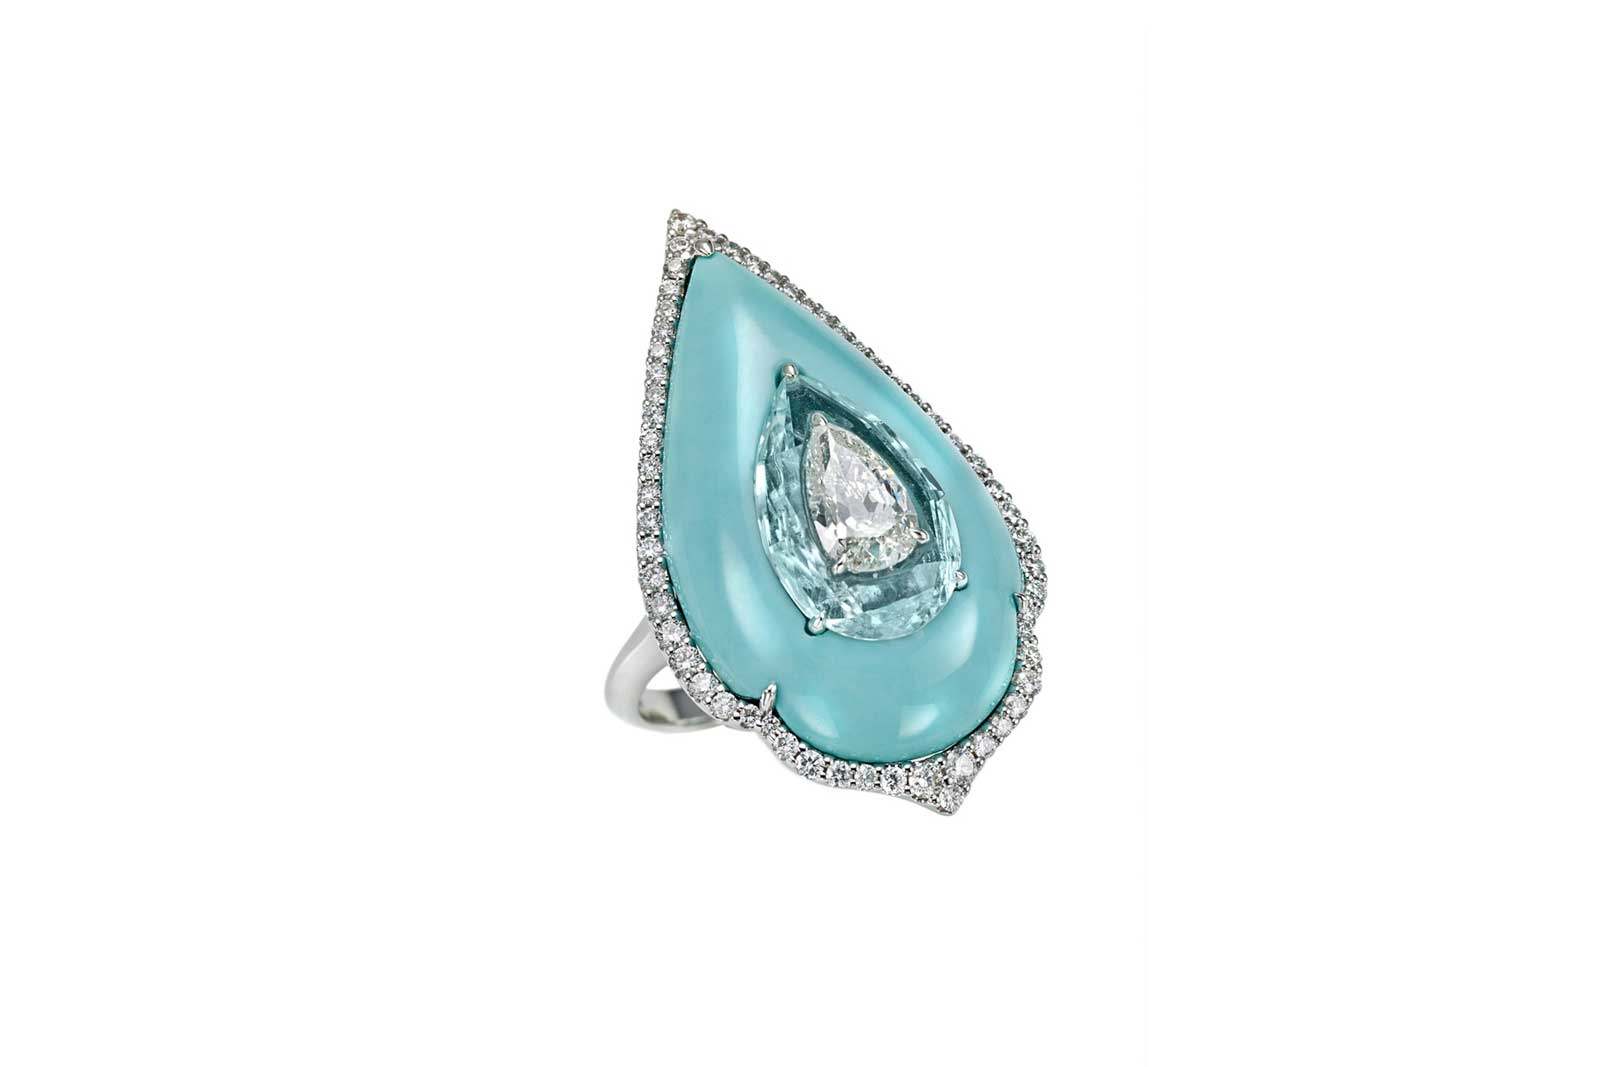 boghossian_turquoise_aqaumarine_and_diamond_ring.jpg